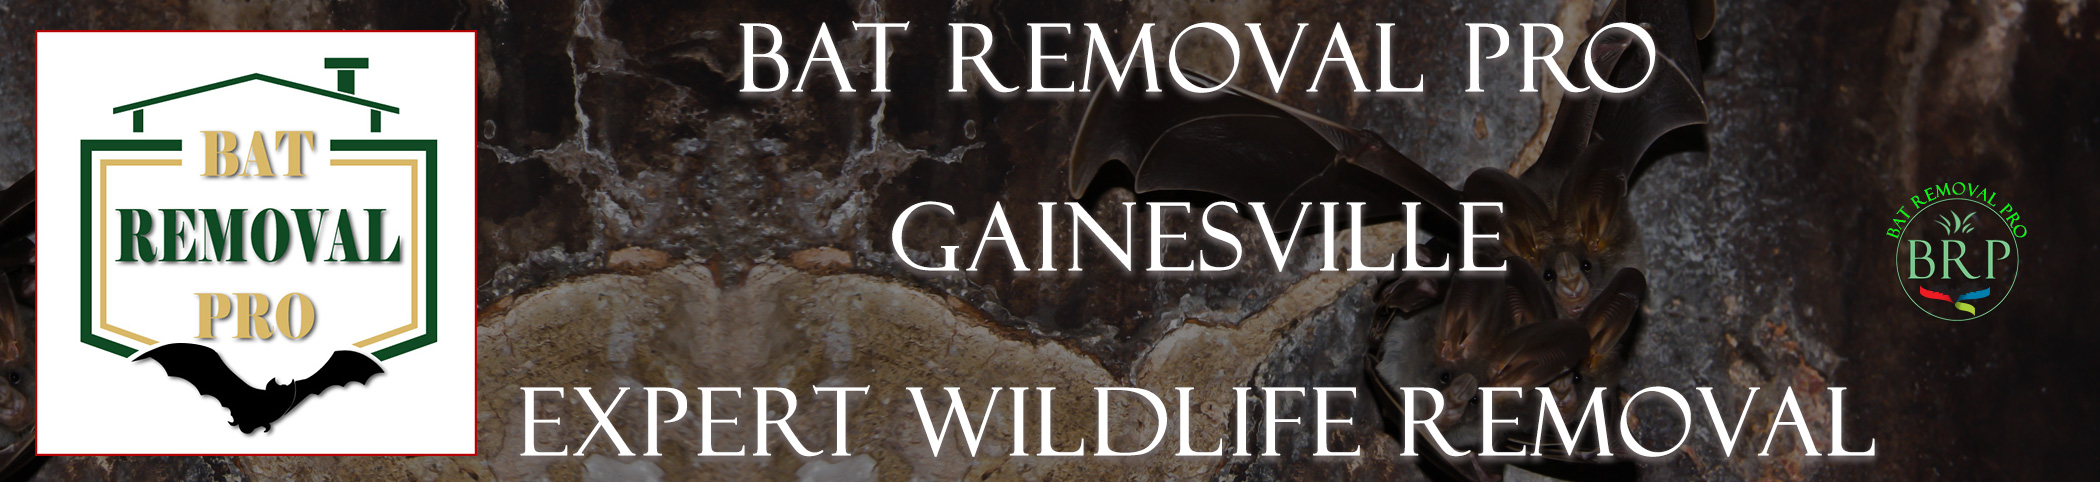 Gainesville-bat-removal-at-bat-removal-pro-header-image